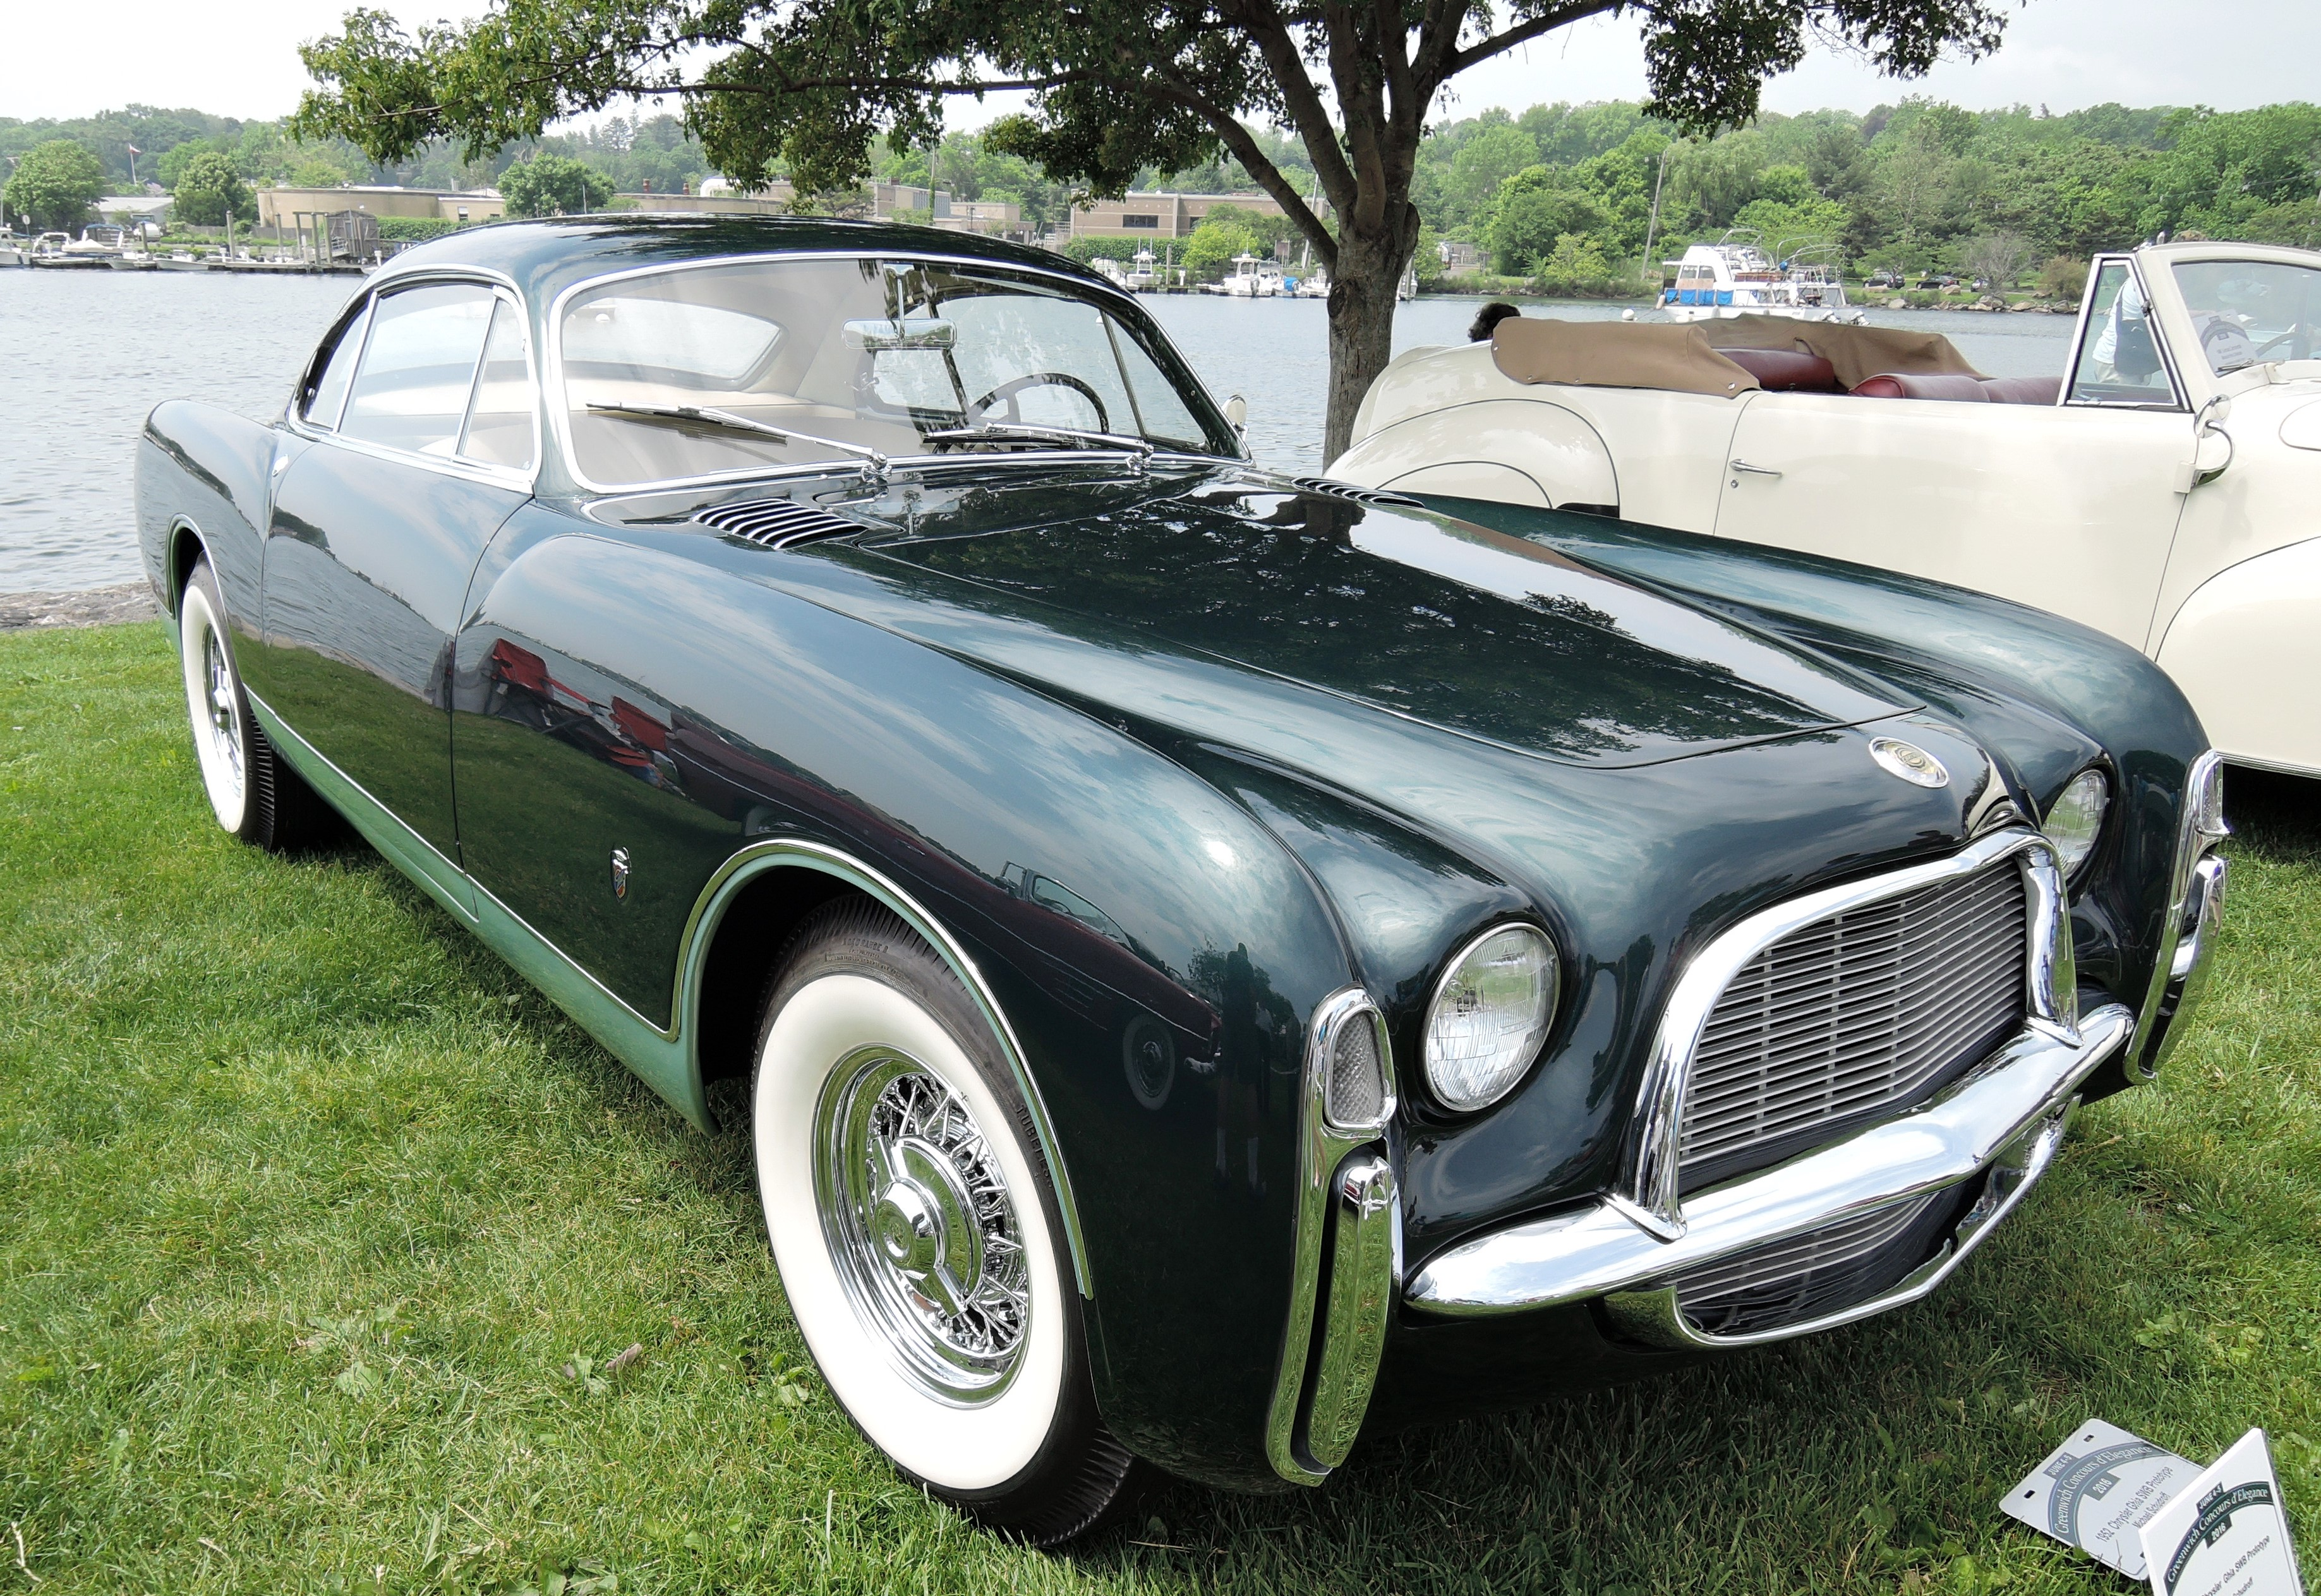 green 1952 Chrysler Ghia SWB Prototype - greenwich concours